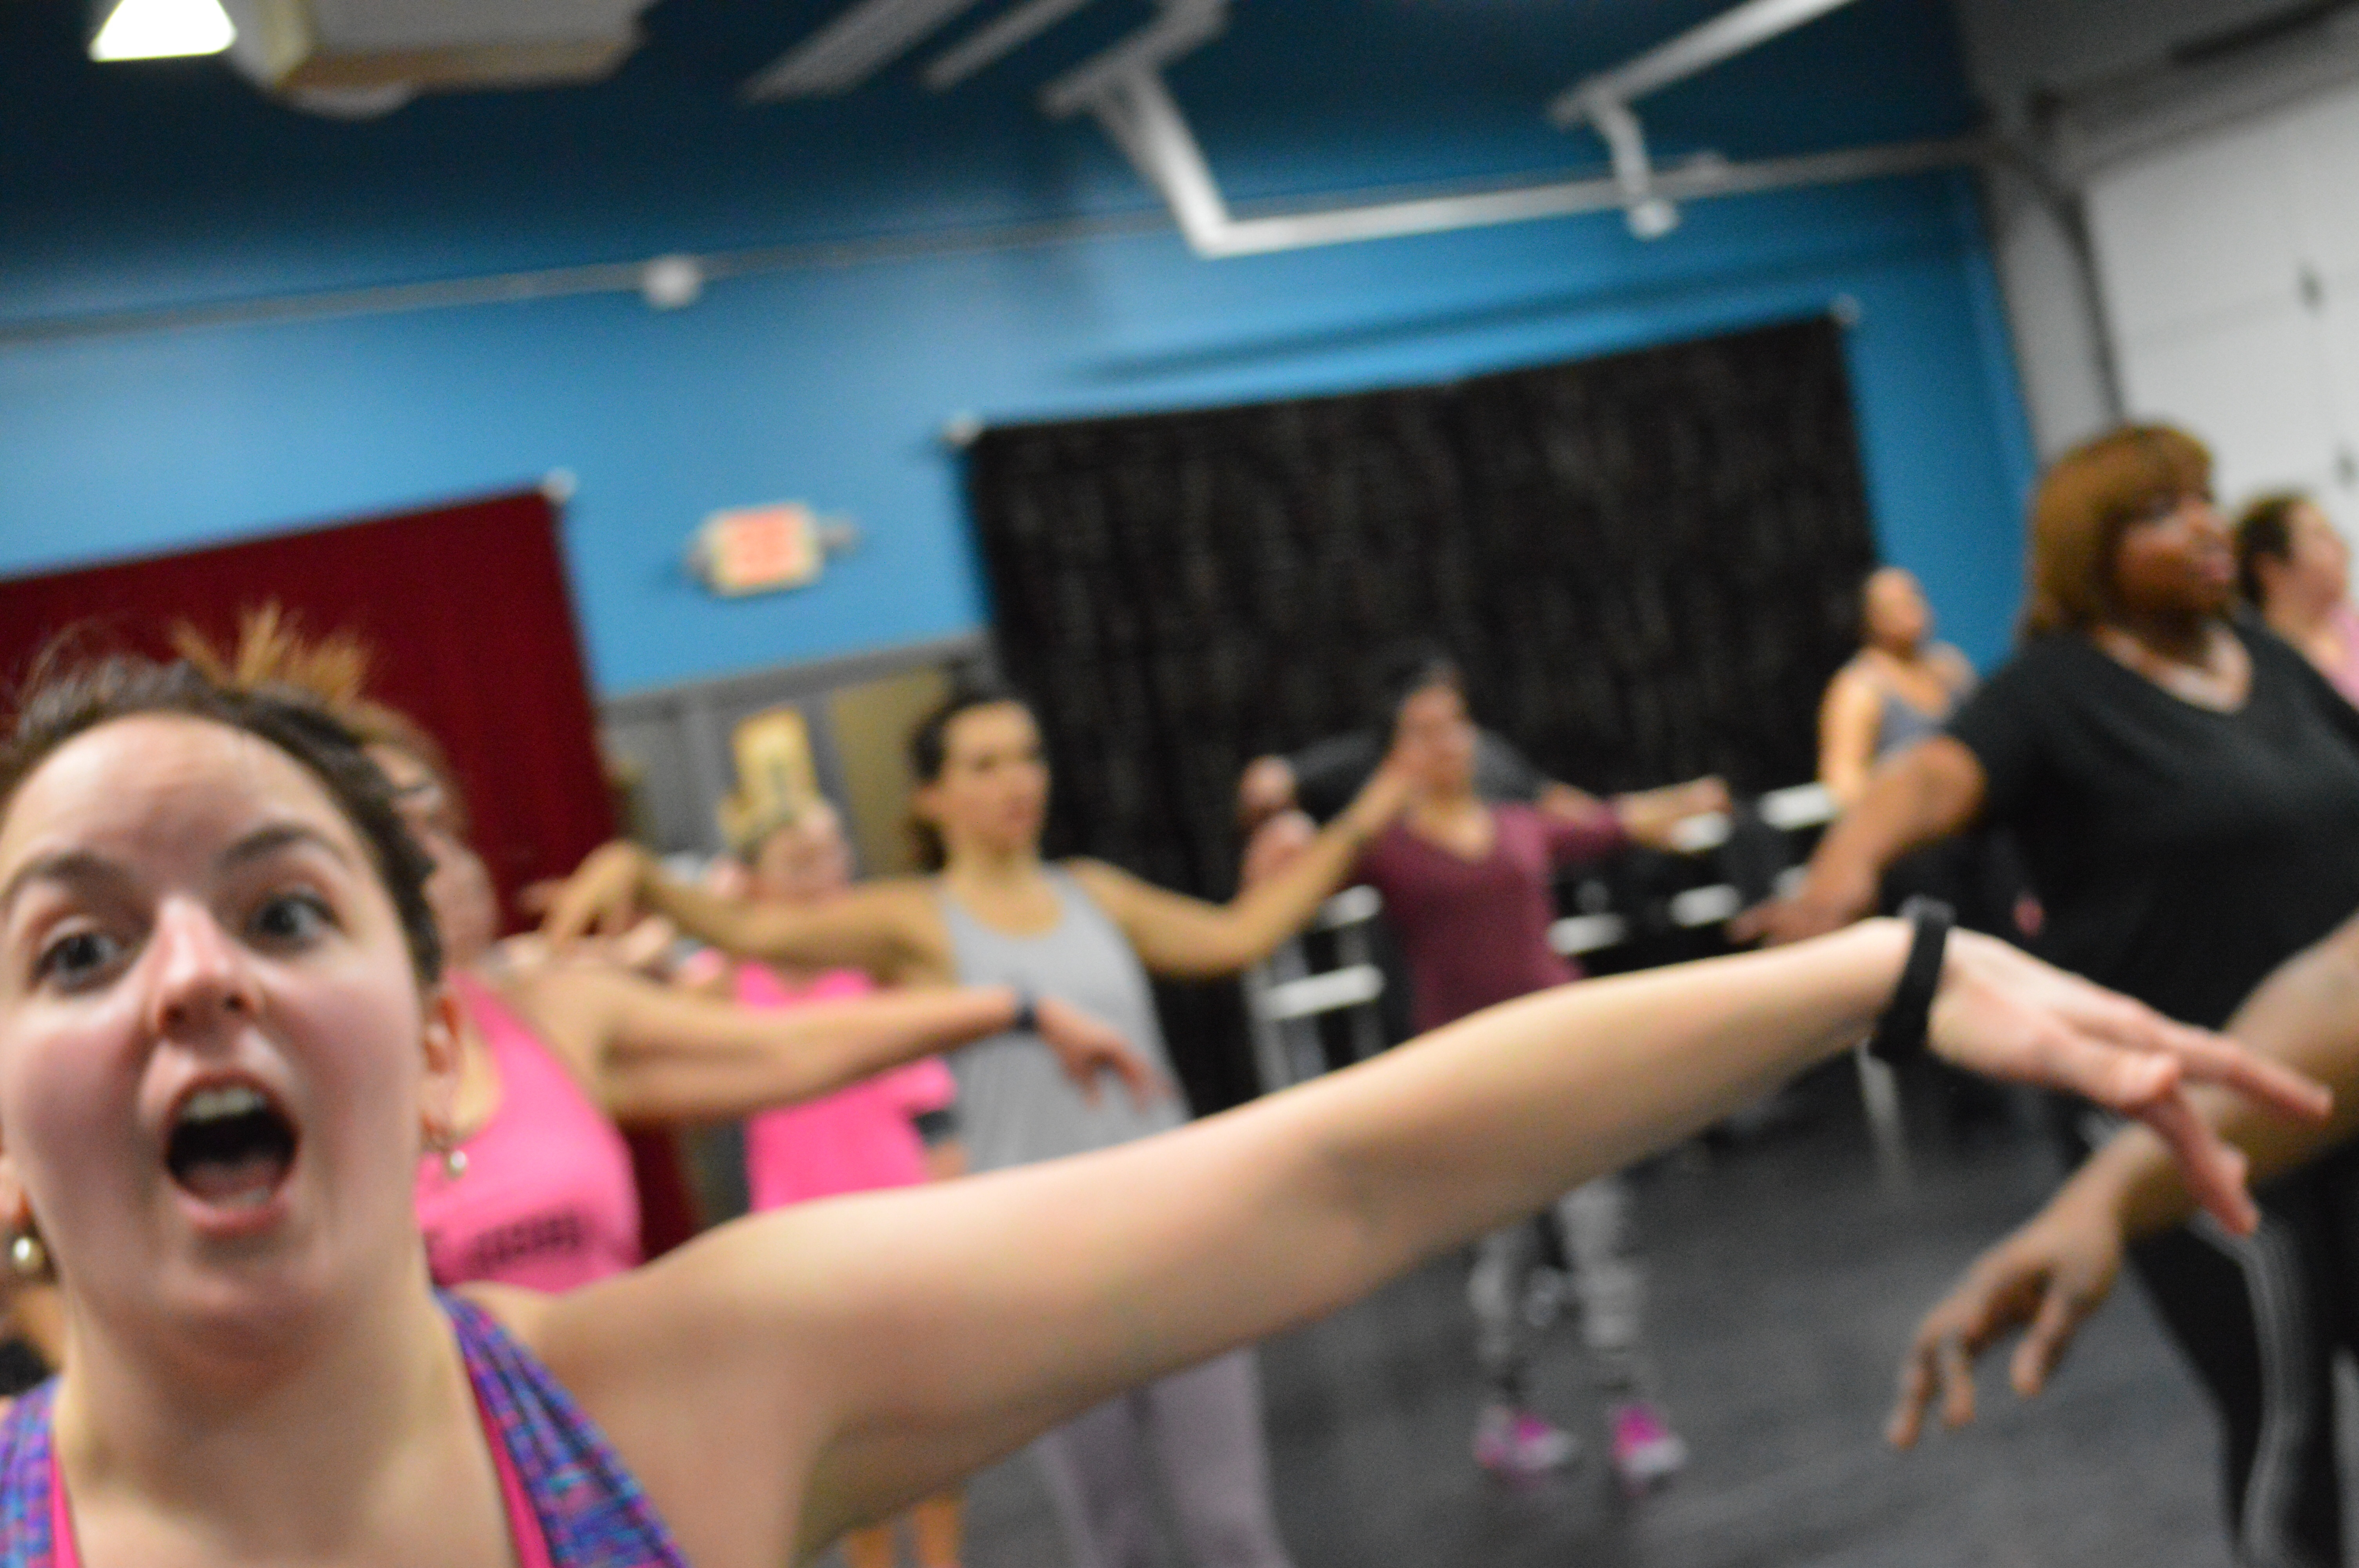 Mike Nicholson leads an Hip Hop Fitness class in Dublin Ohio A Suburb of Columbus Ohio